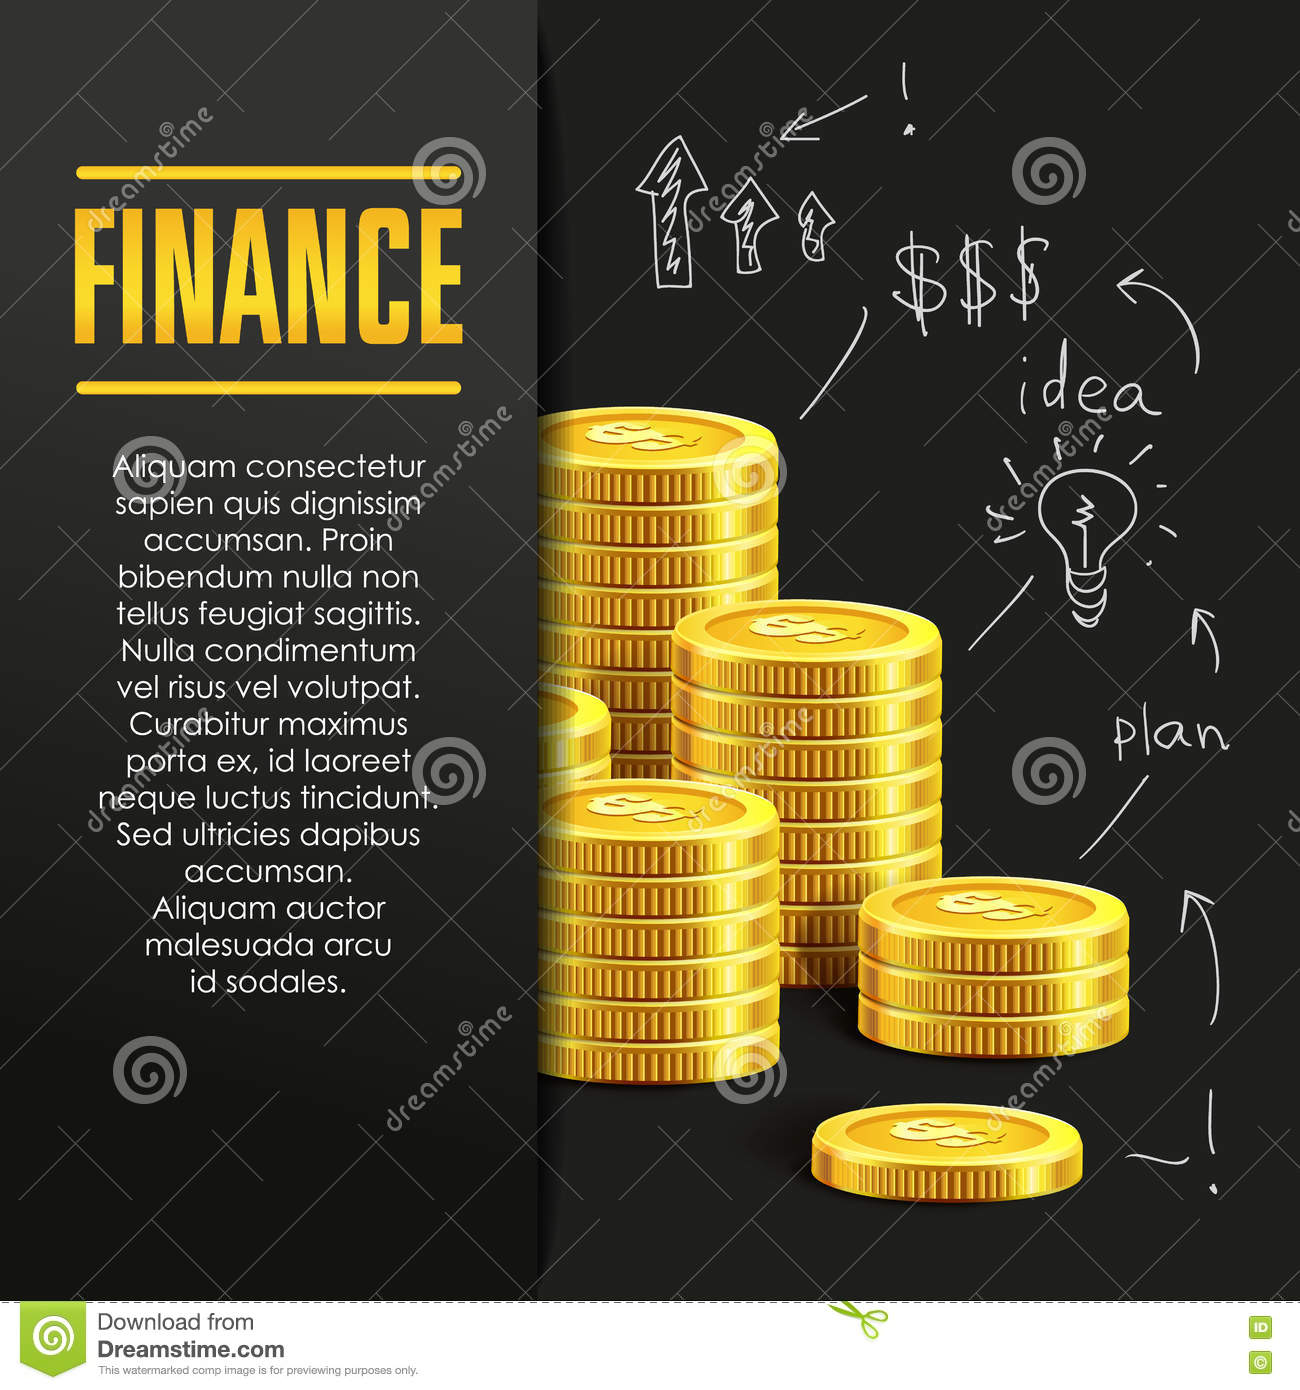 Finance: Finance Poster Or Banner Design Template With Golden Coins